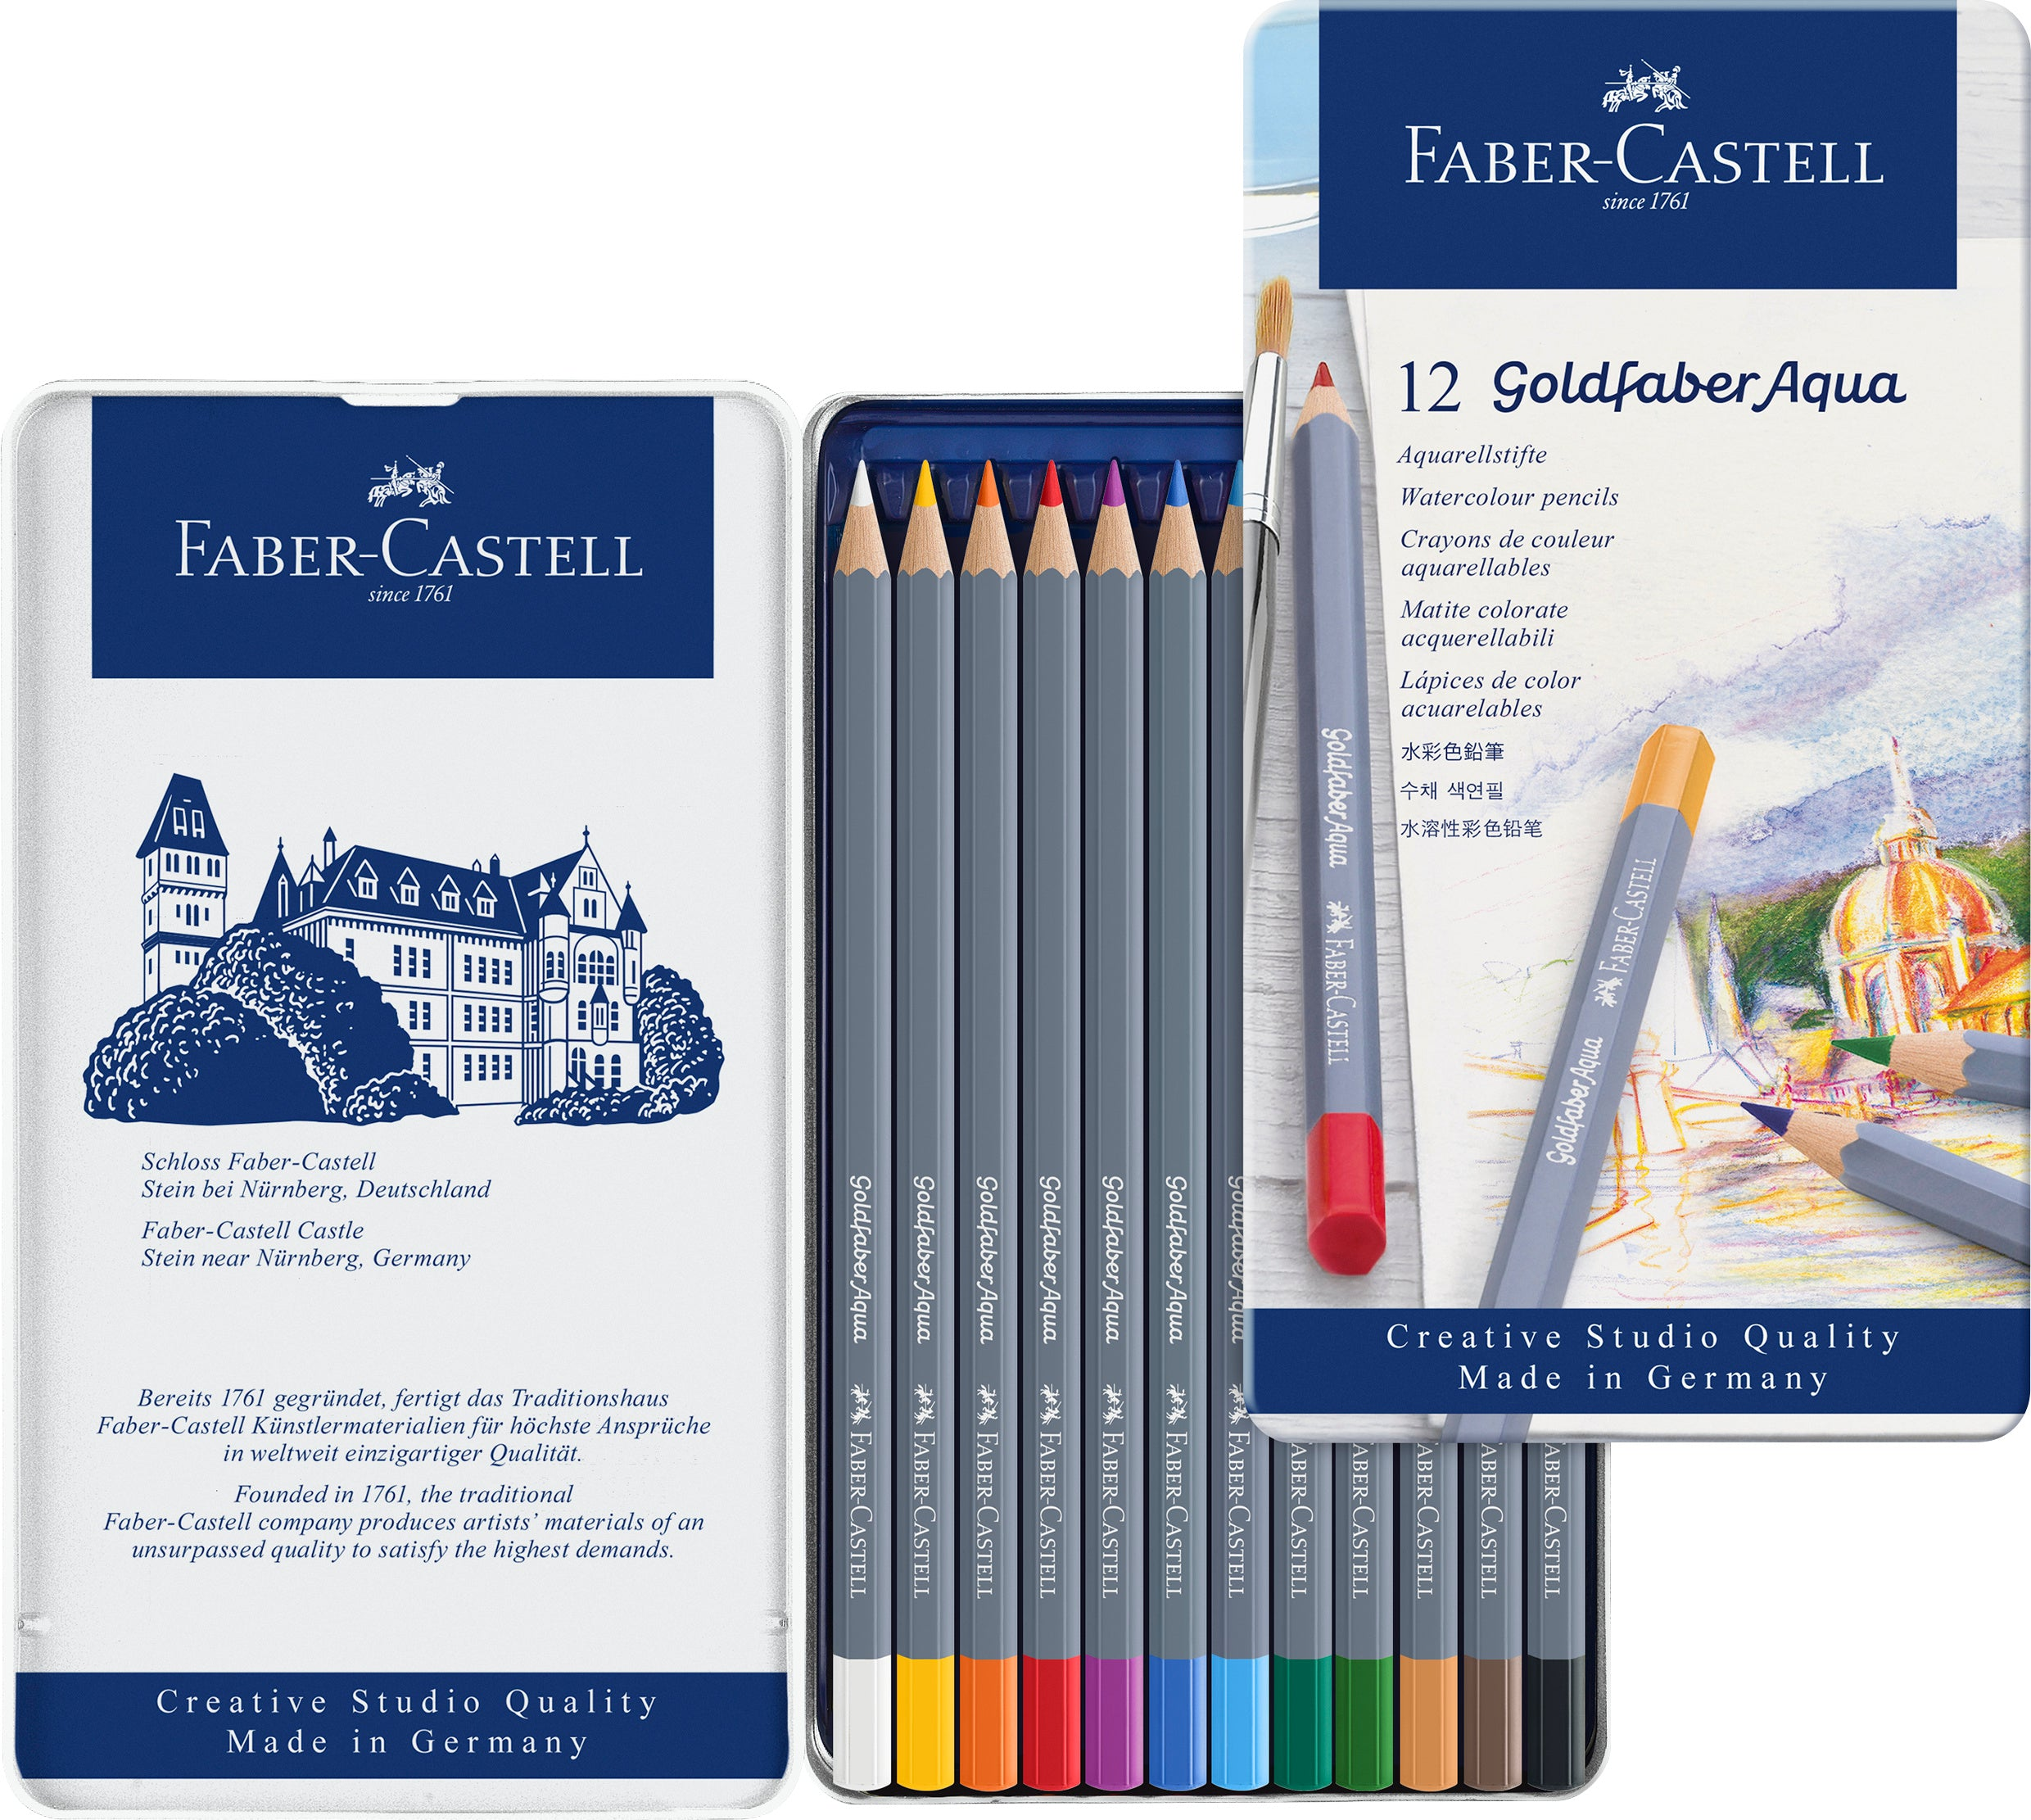 Goldfaber Aqua Watercolor Pencils - 12 Count Tin